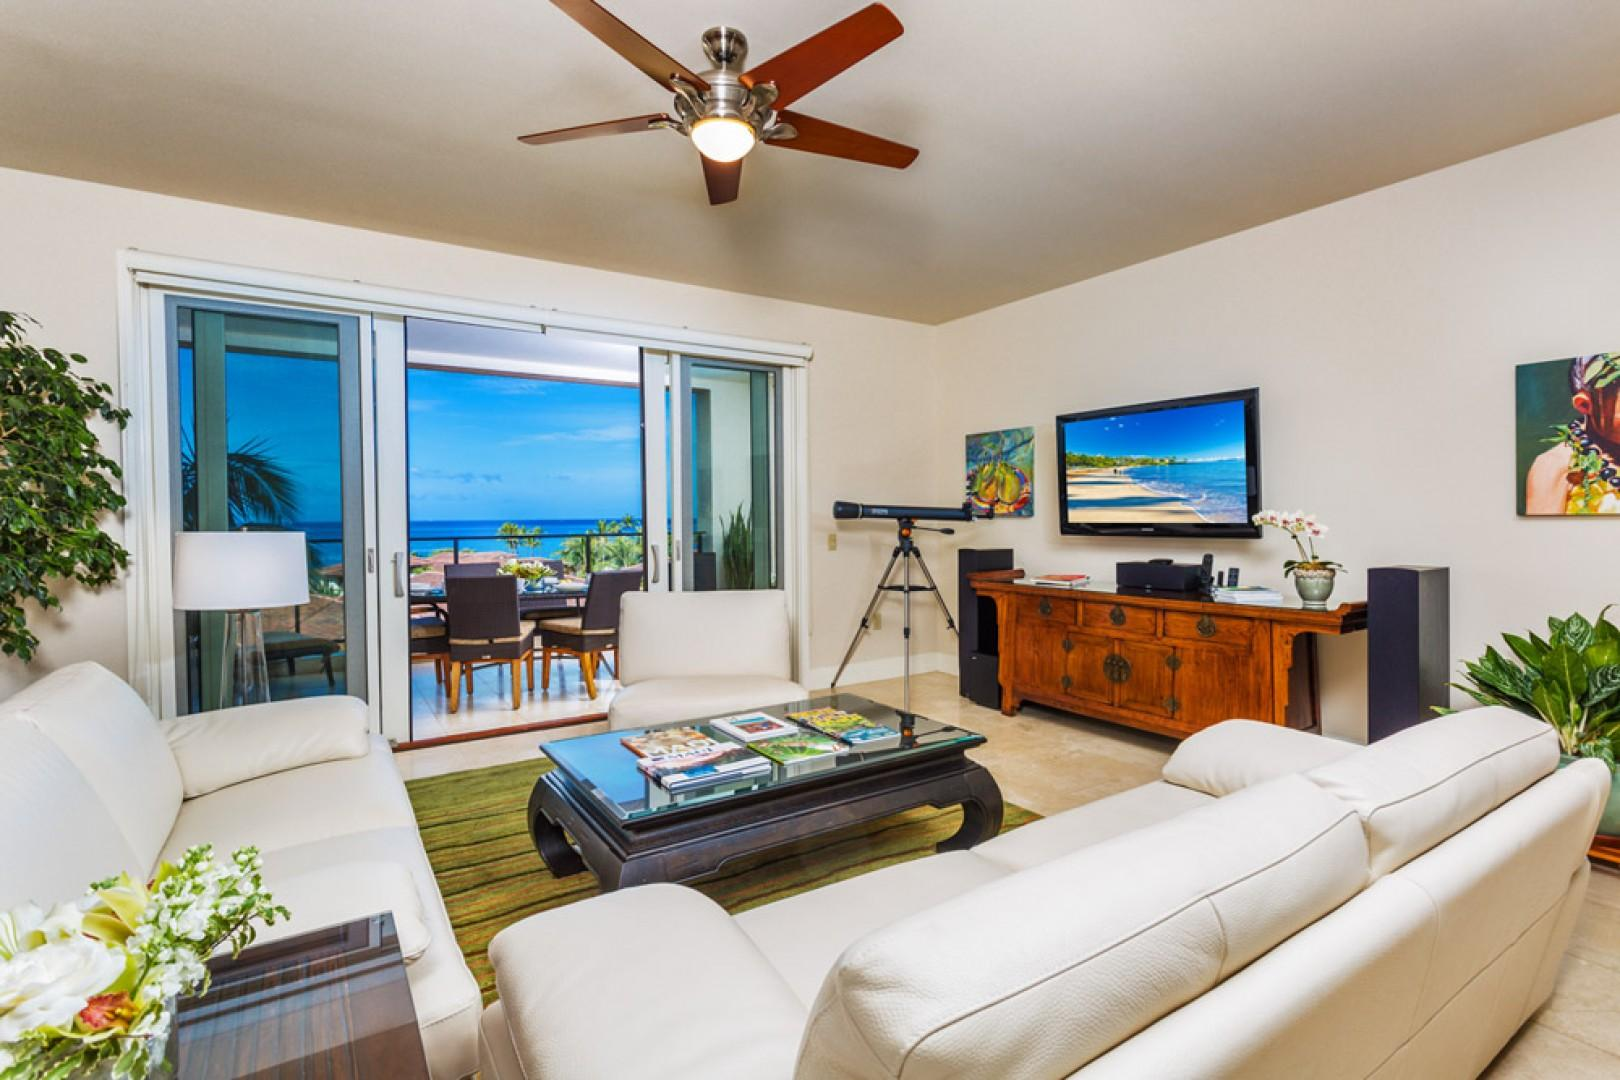 Spacious ocean-view great room with Natuzzi leather furnishings, 50